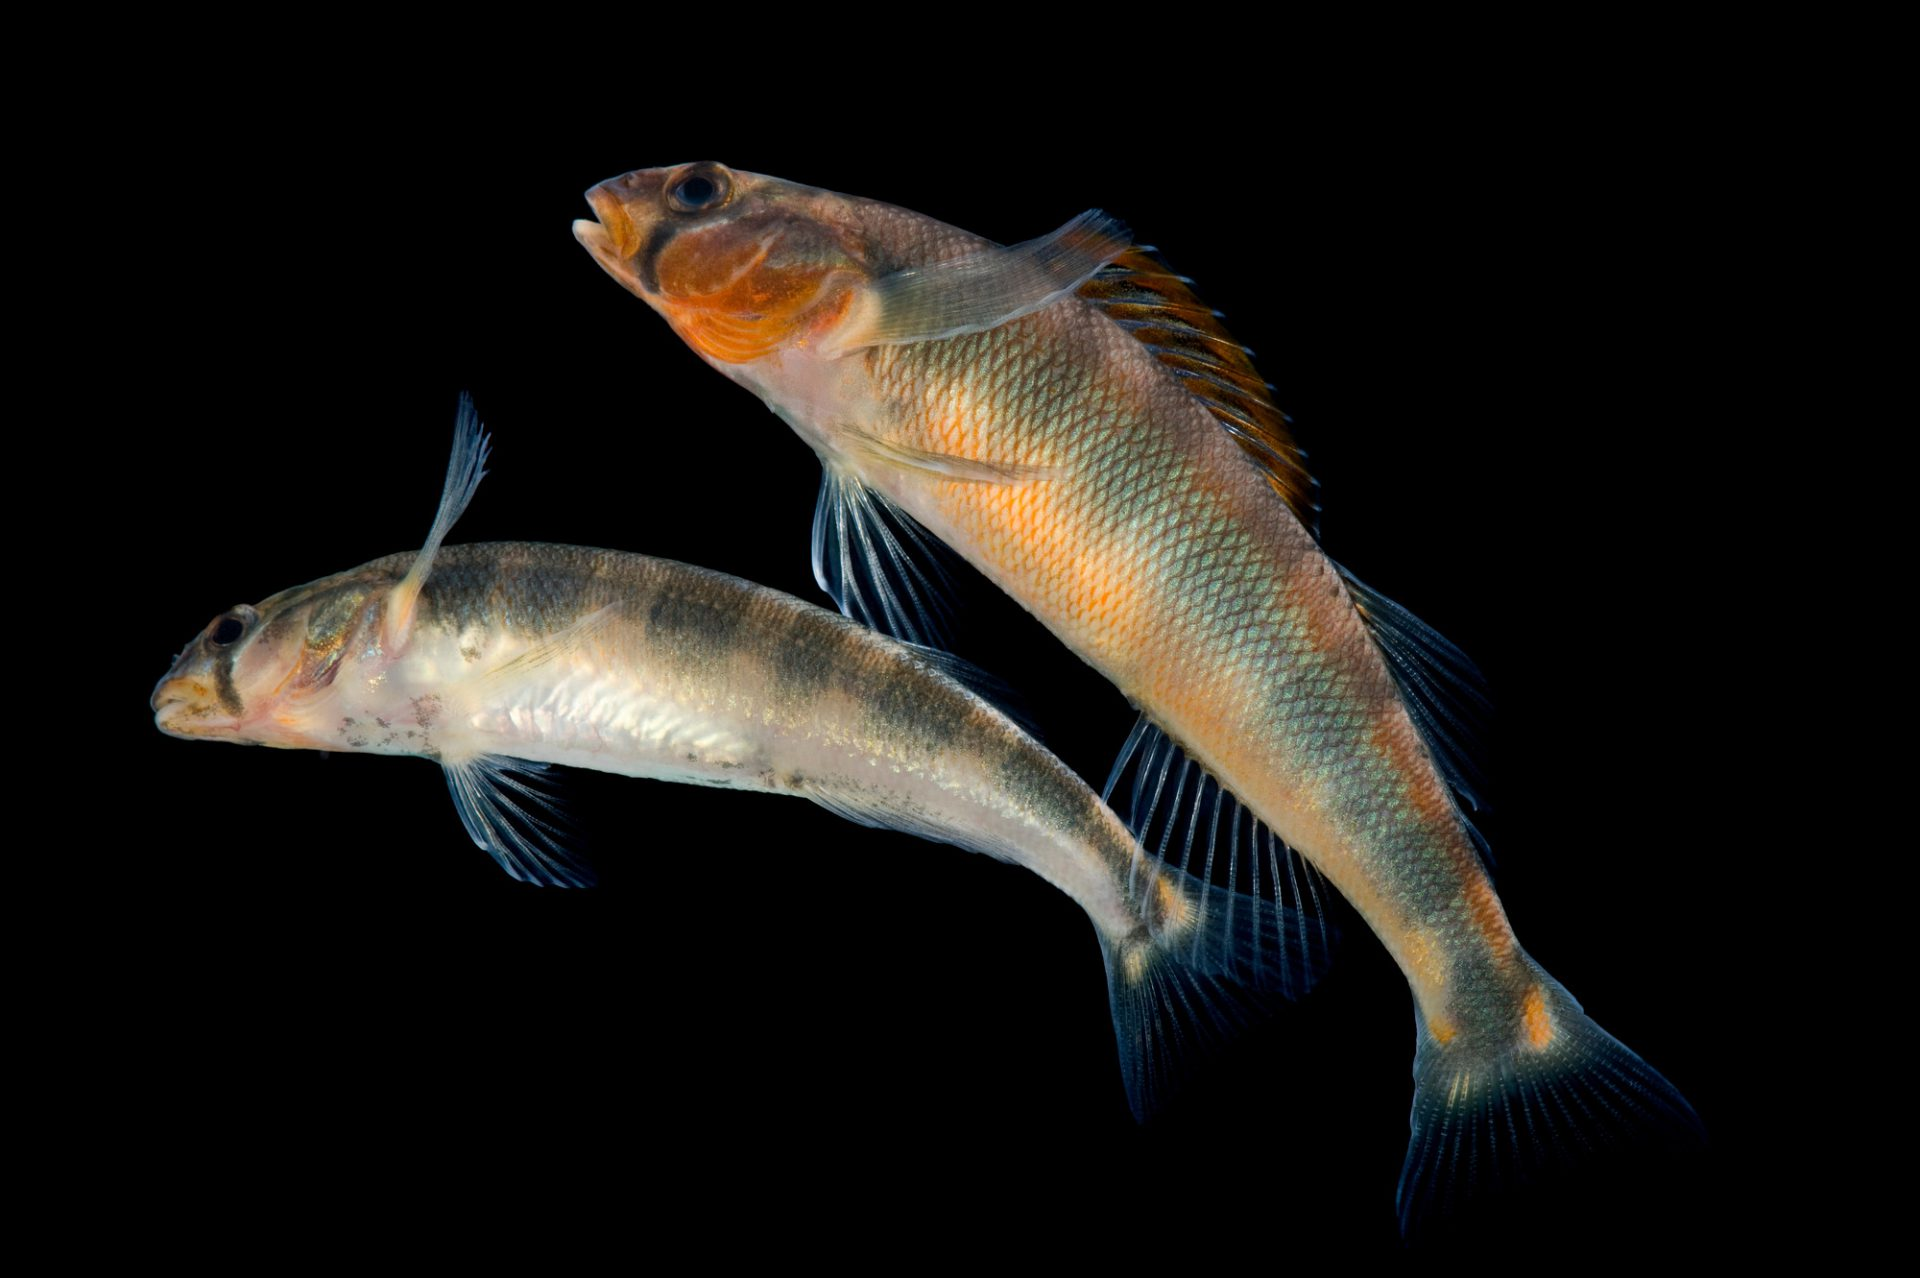 A gilt darter (Percina evides). This species is listed as endangered in New York, from which it has been largely extirpated. It is common in the southeastern U.S.